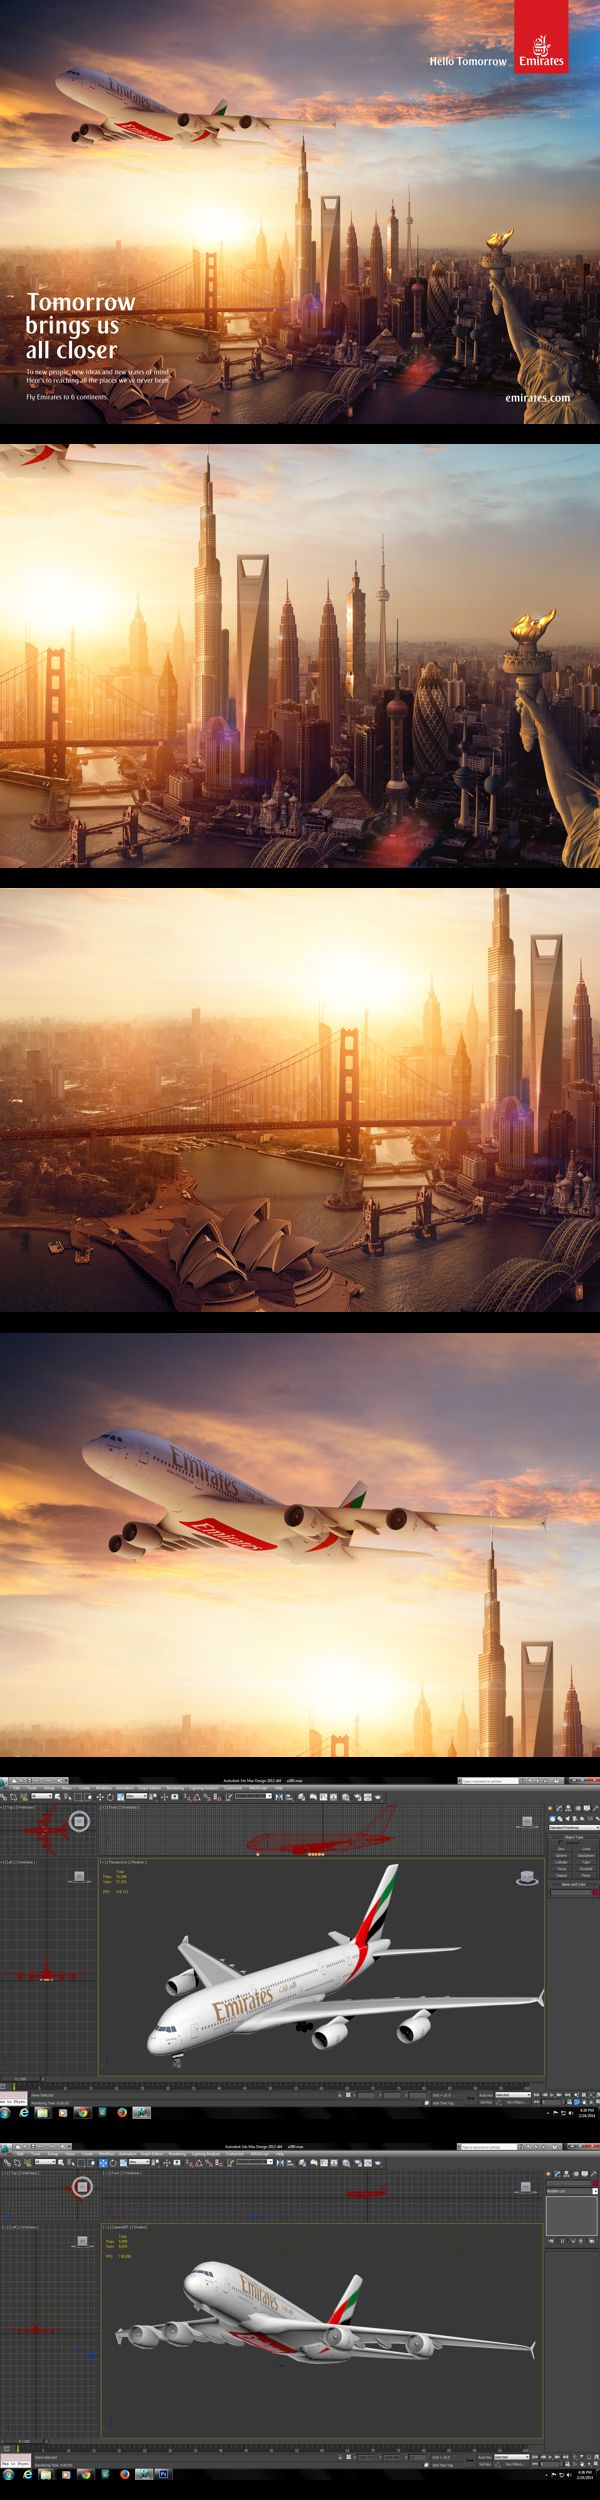 Fly Emirates | Hello Tomorrow by Edvin Puzinkevich, via Behance